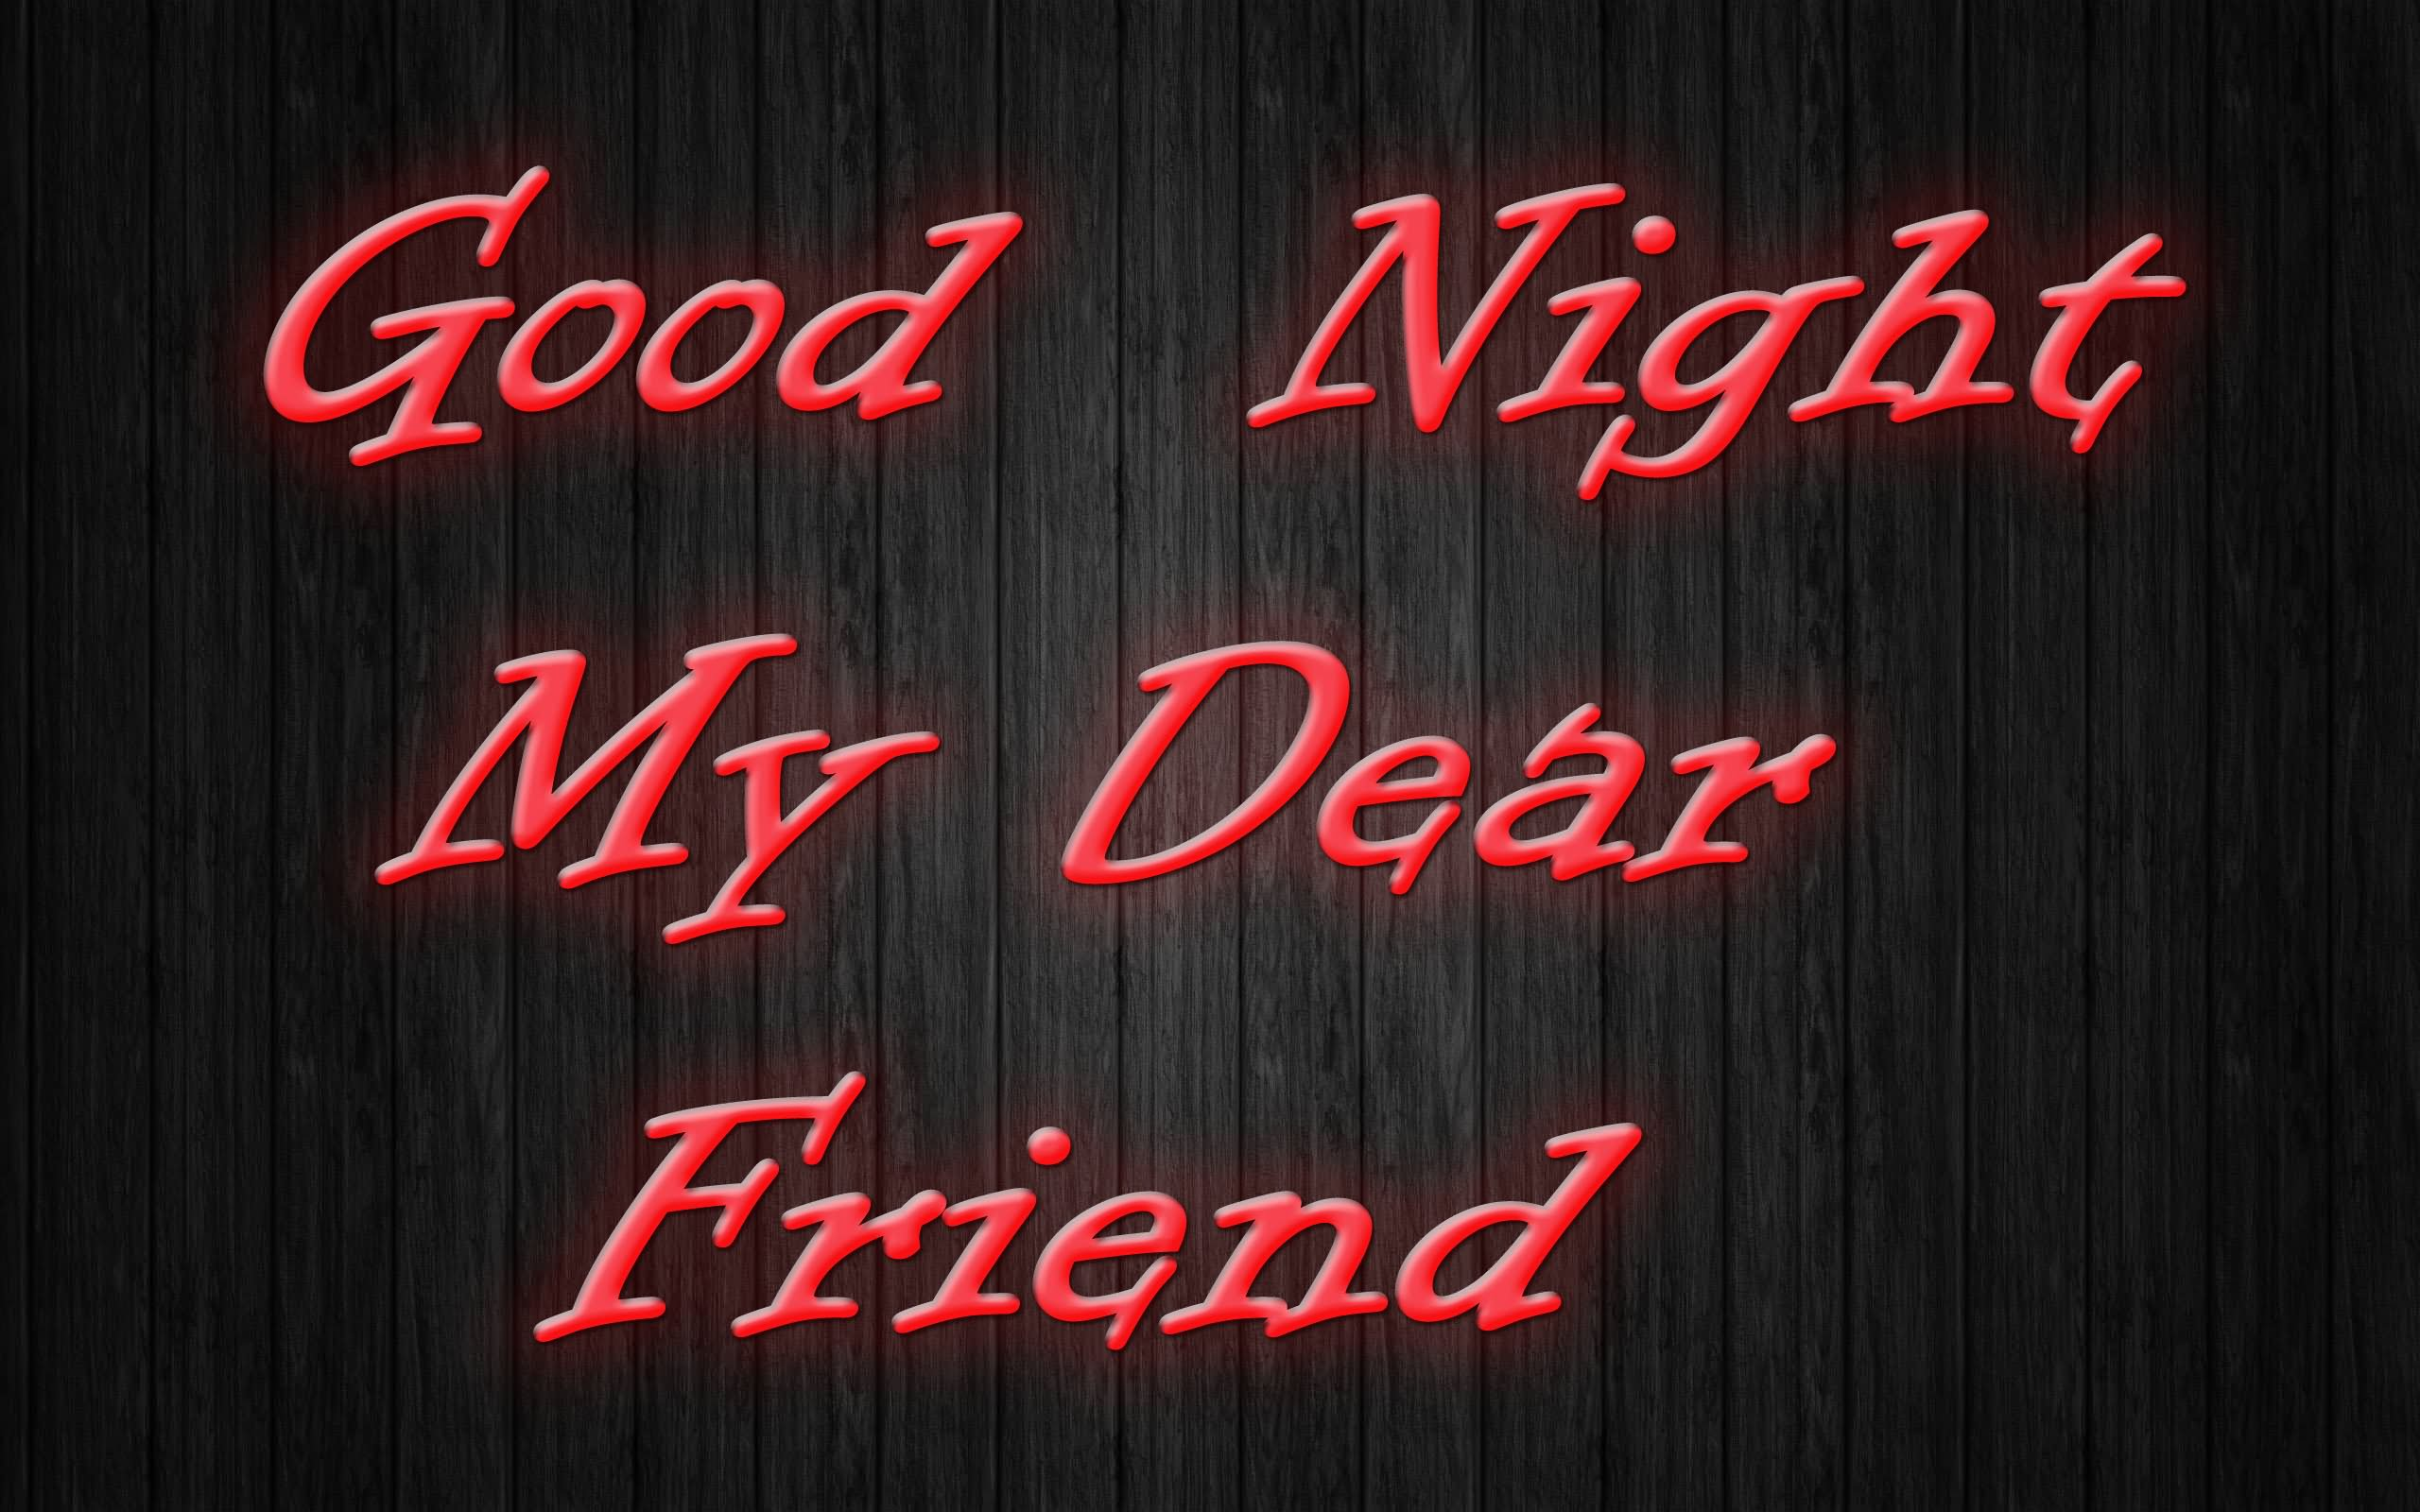 Good Night My Dear Friend Wishes HD Wallpaper